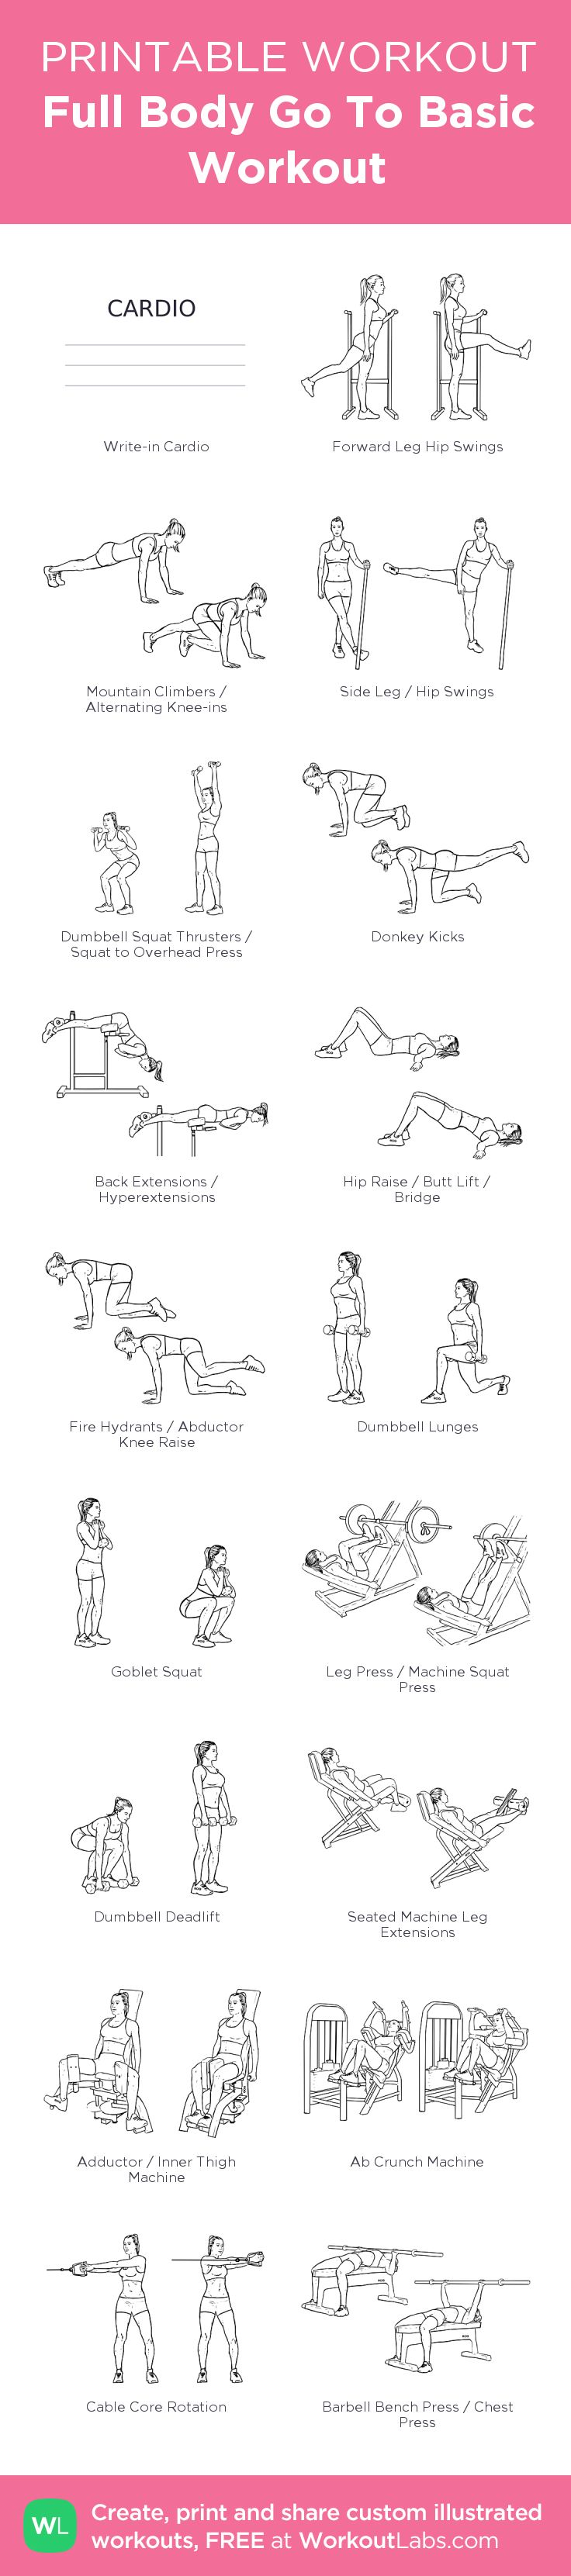 Full Body Go To Basic Workout –Part 1 Full Body Gym Workout my custom workout created at WorkoutLabs.com • Click through to download as printable PDF! #customworkout